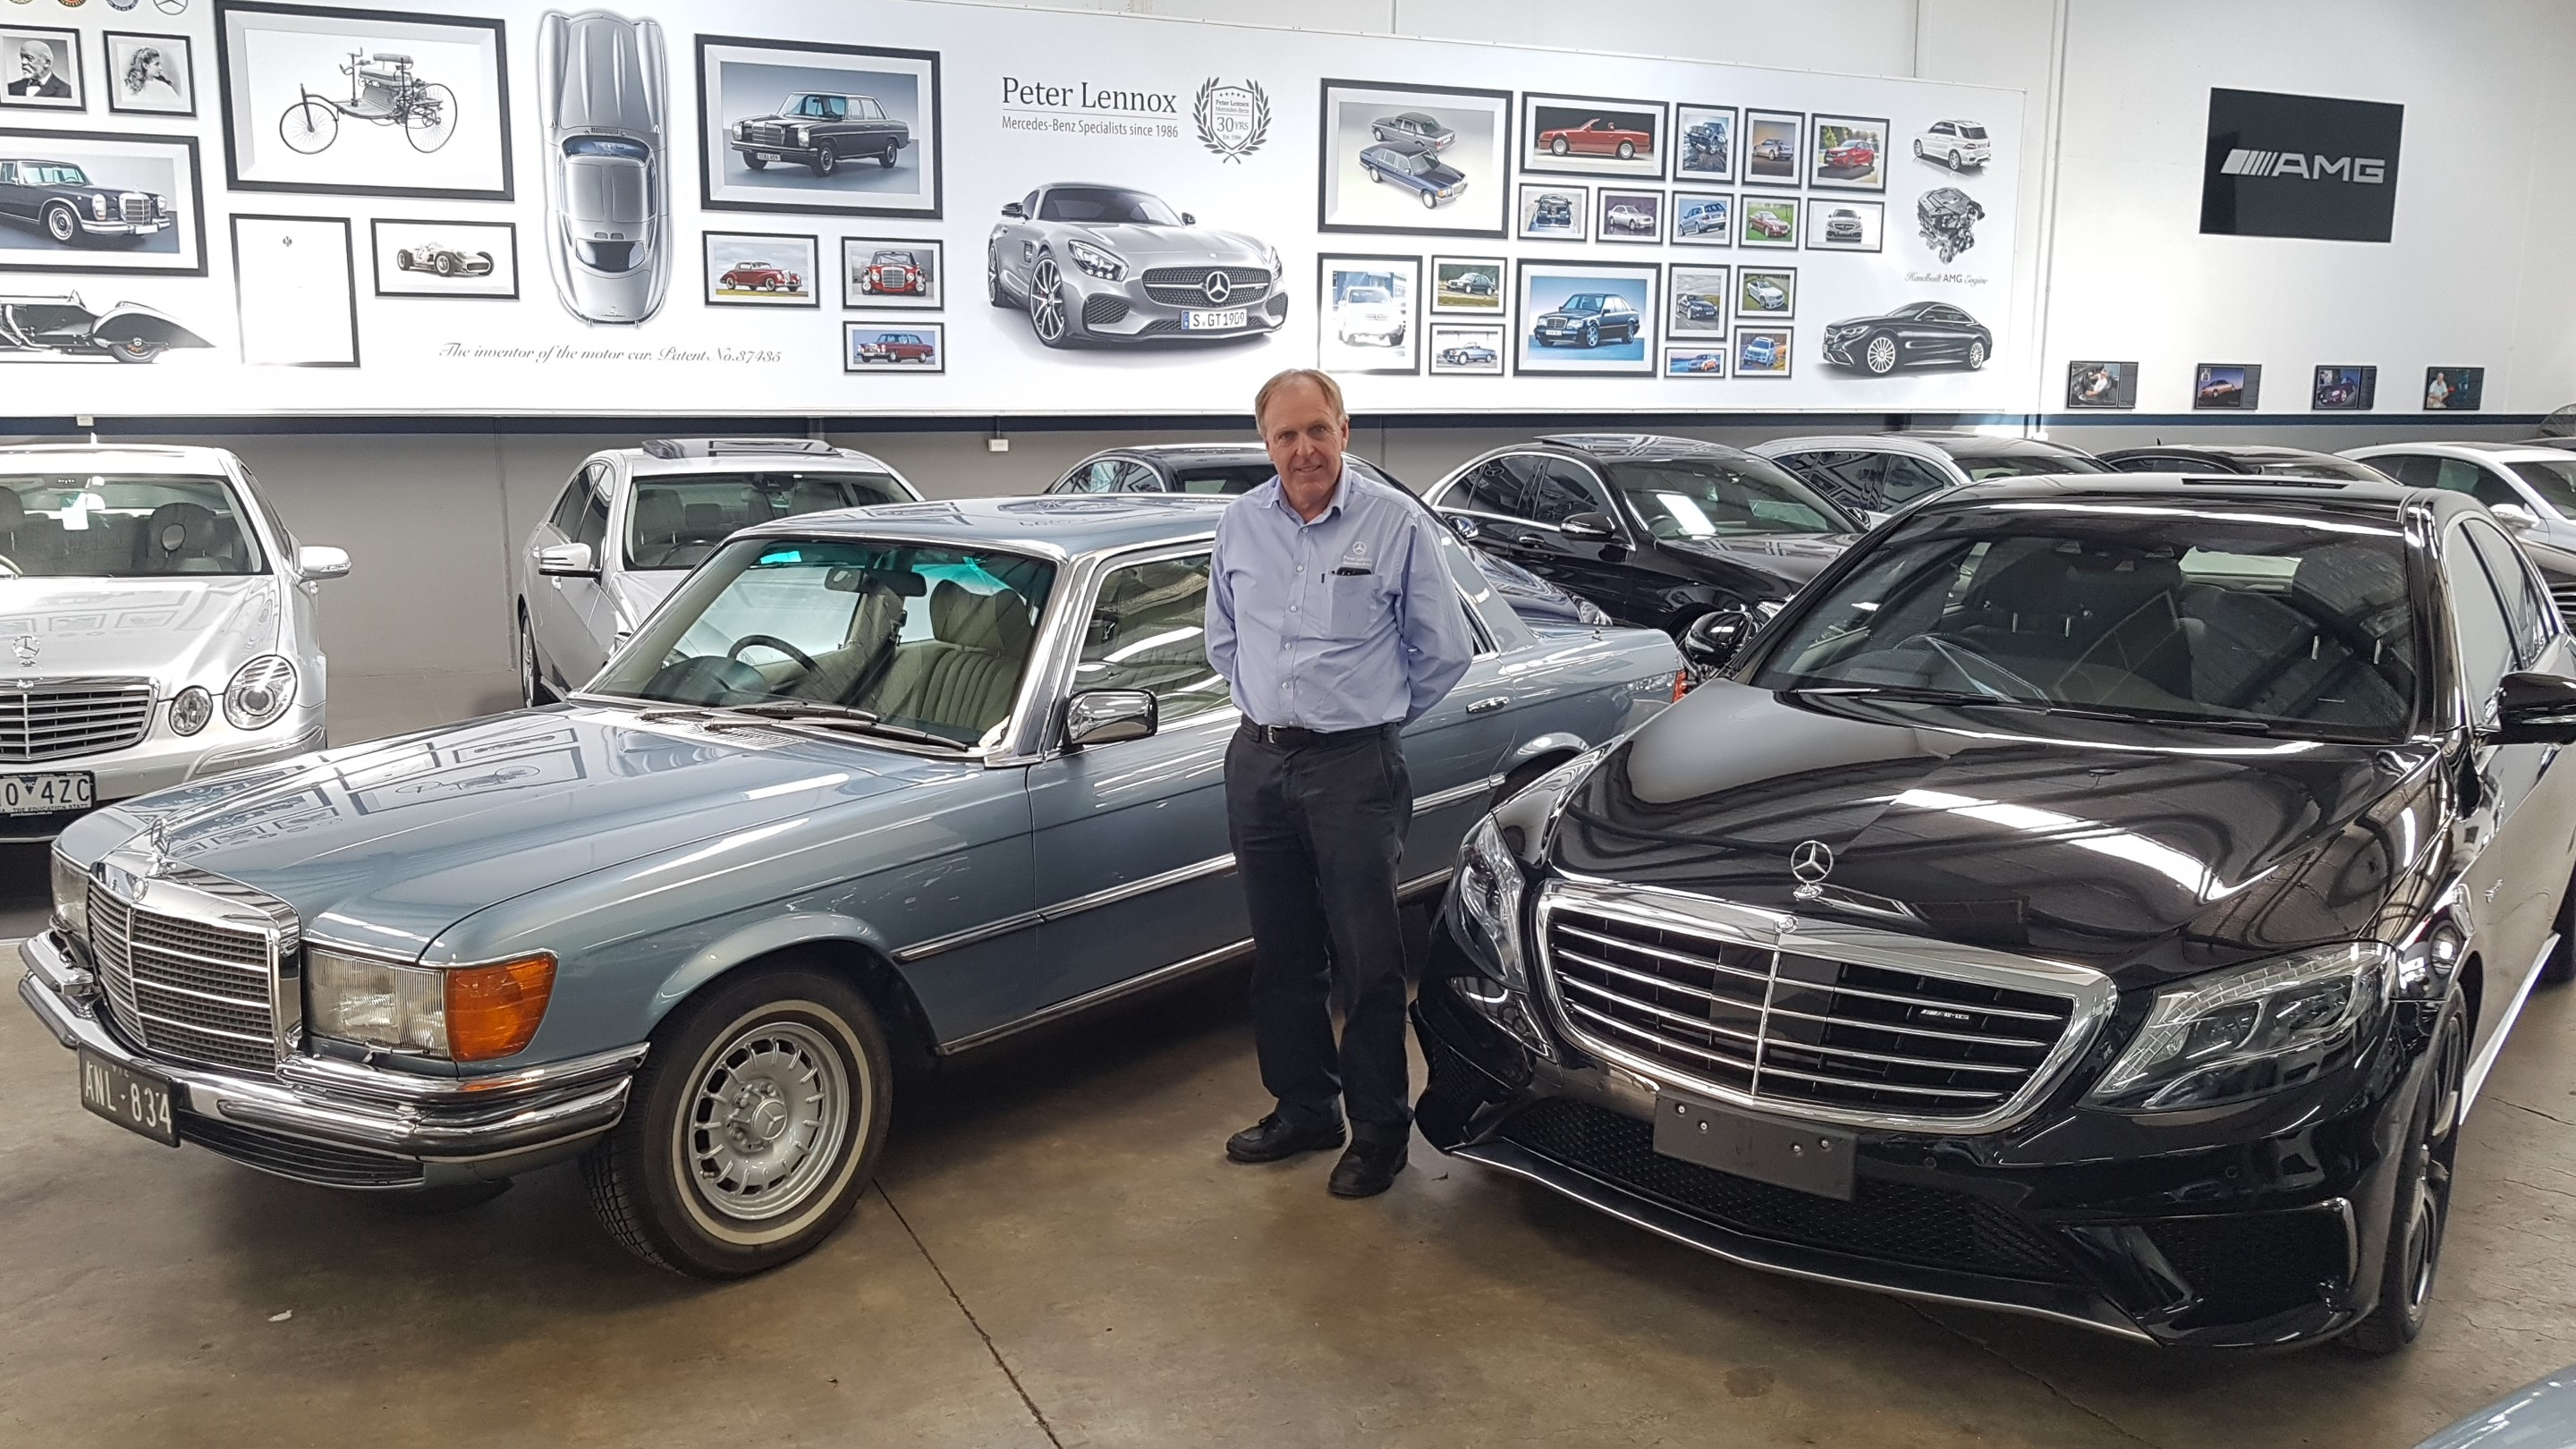 Independent Mercedes Used Car Sales Service In Melbourne Peter Lennox